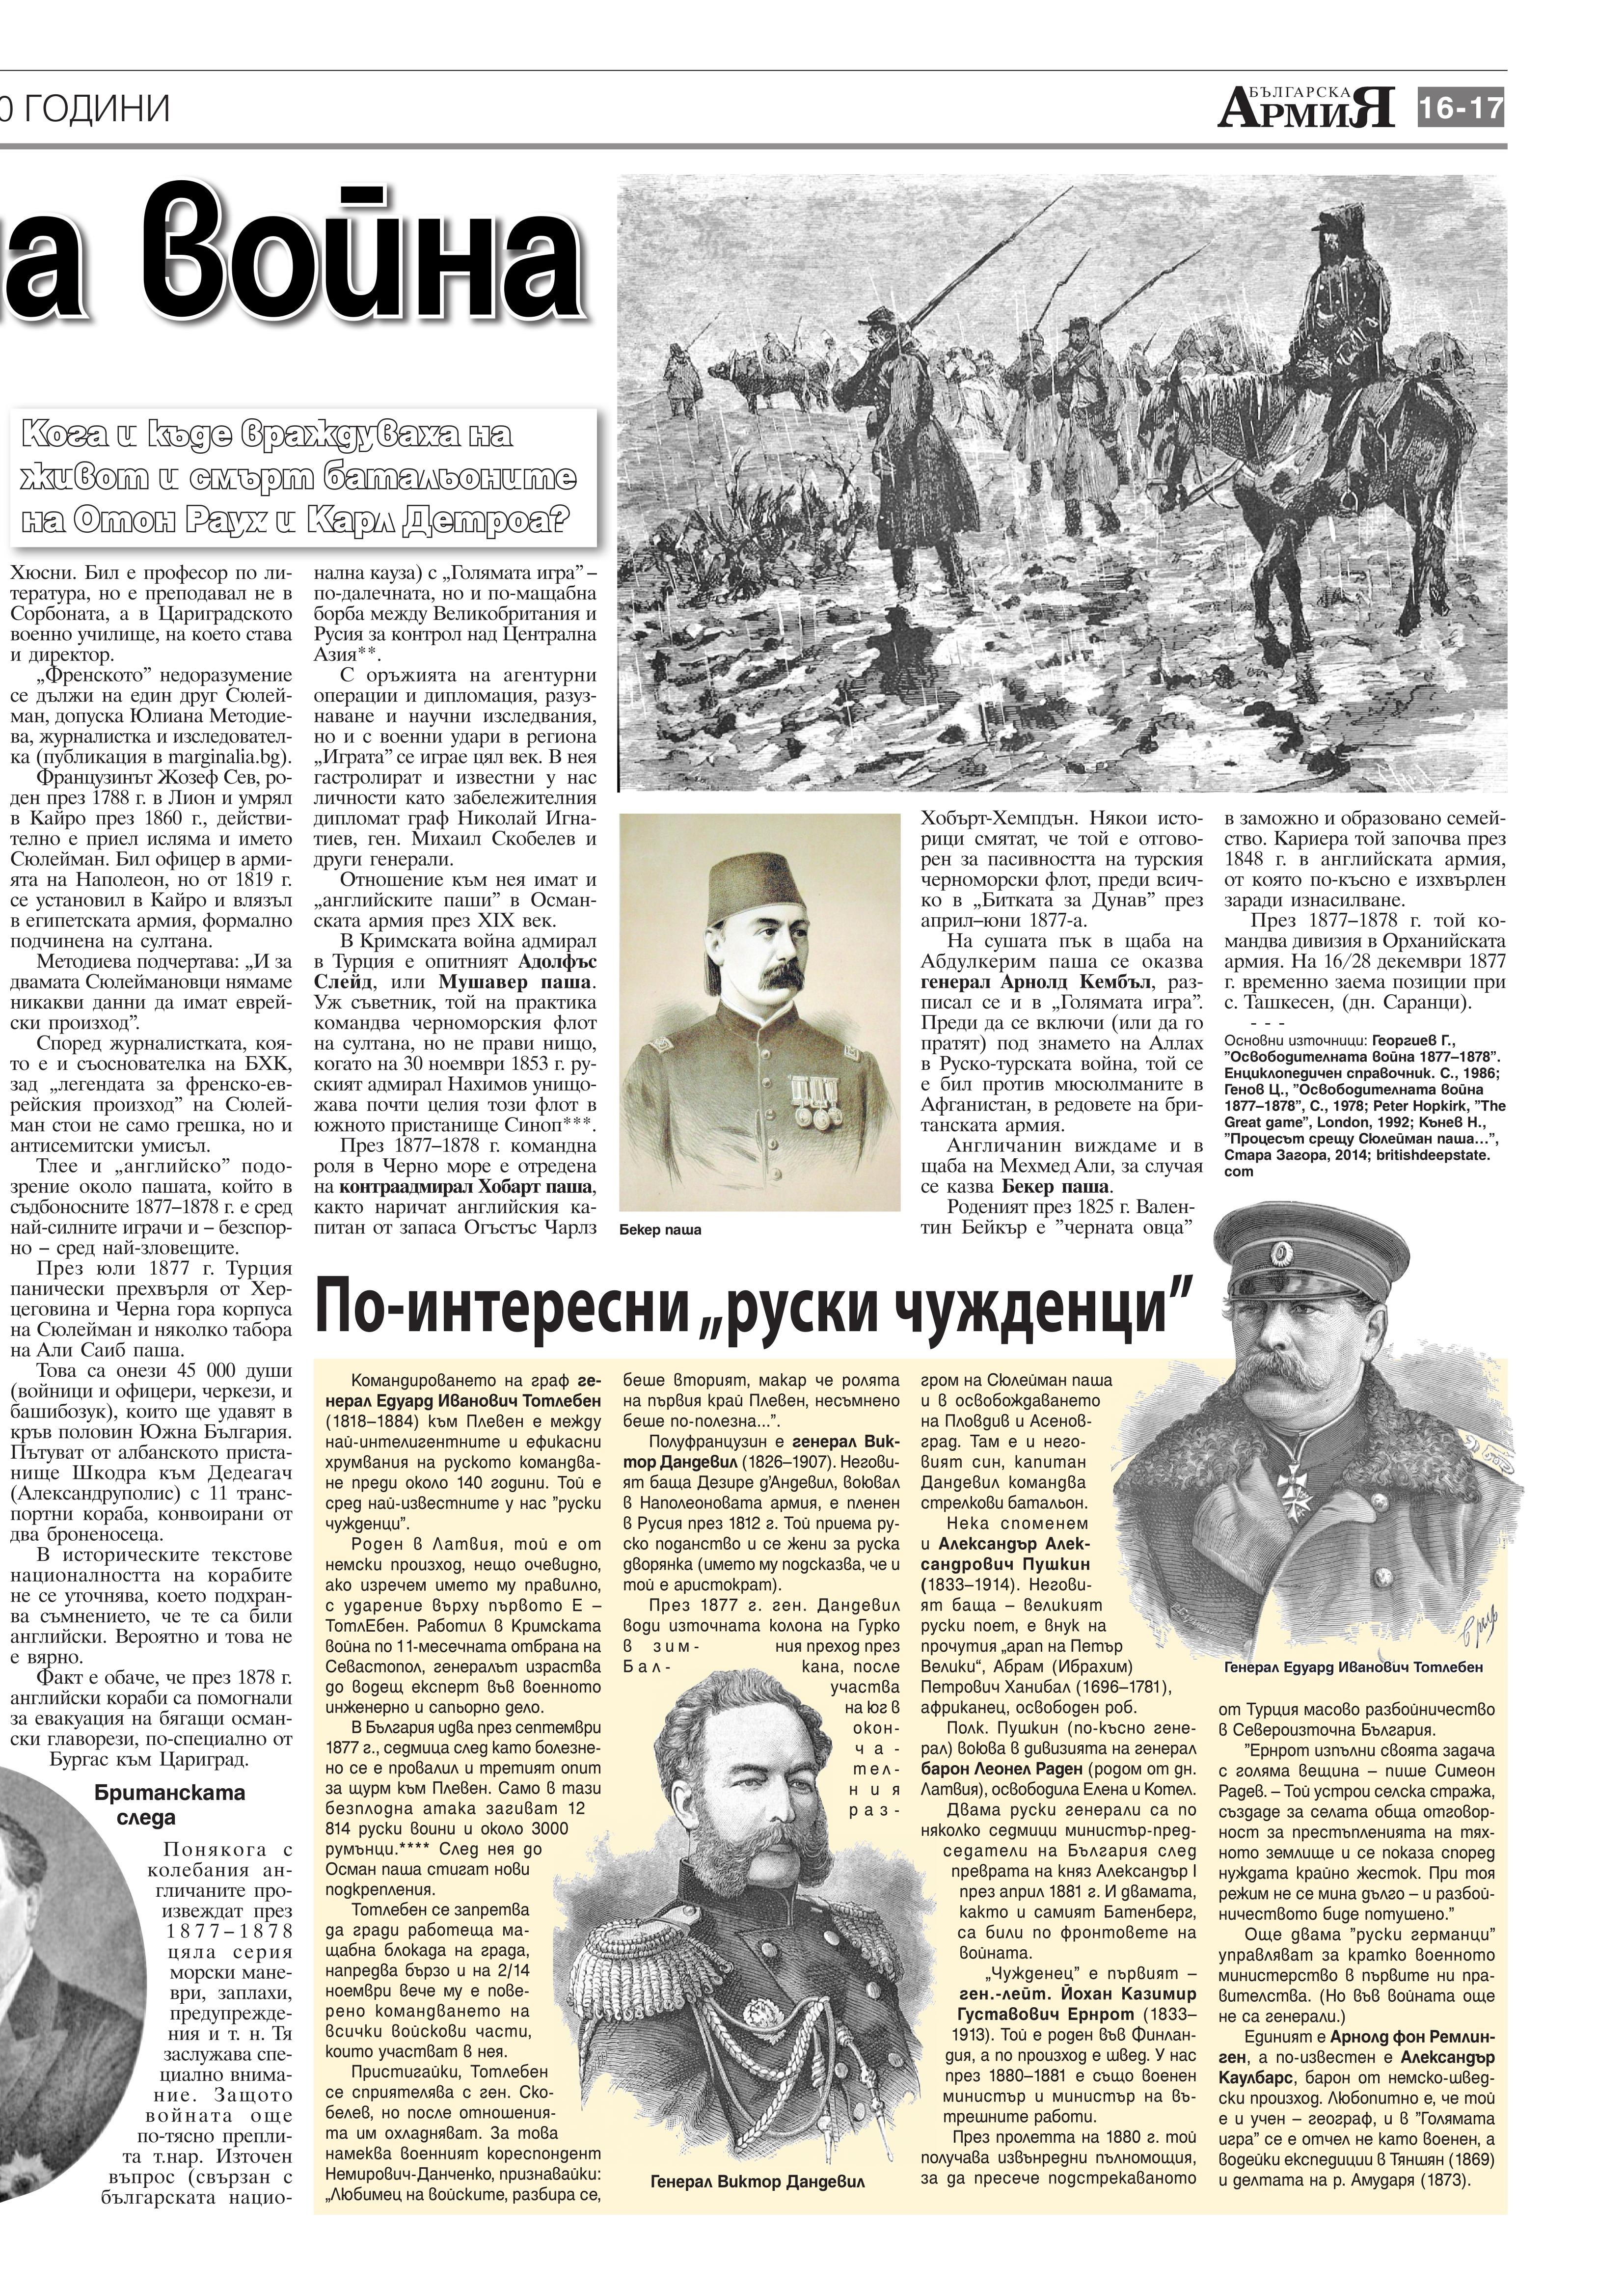 https://armymedia.bg/wp-content/uploads/2015/06/17.page1_-37.jpg